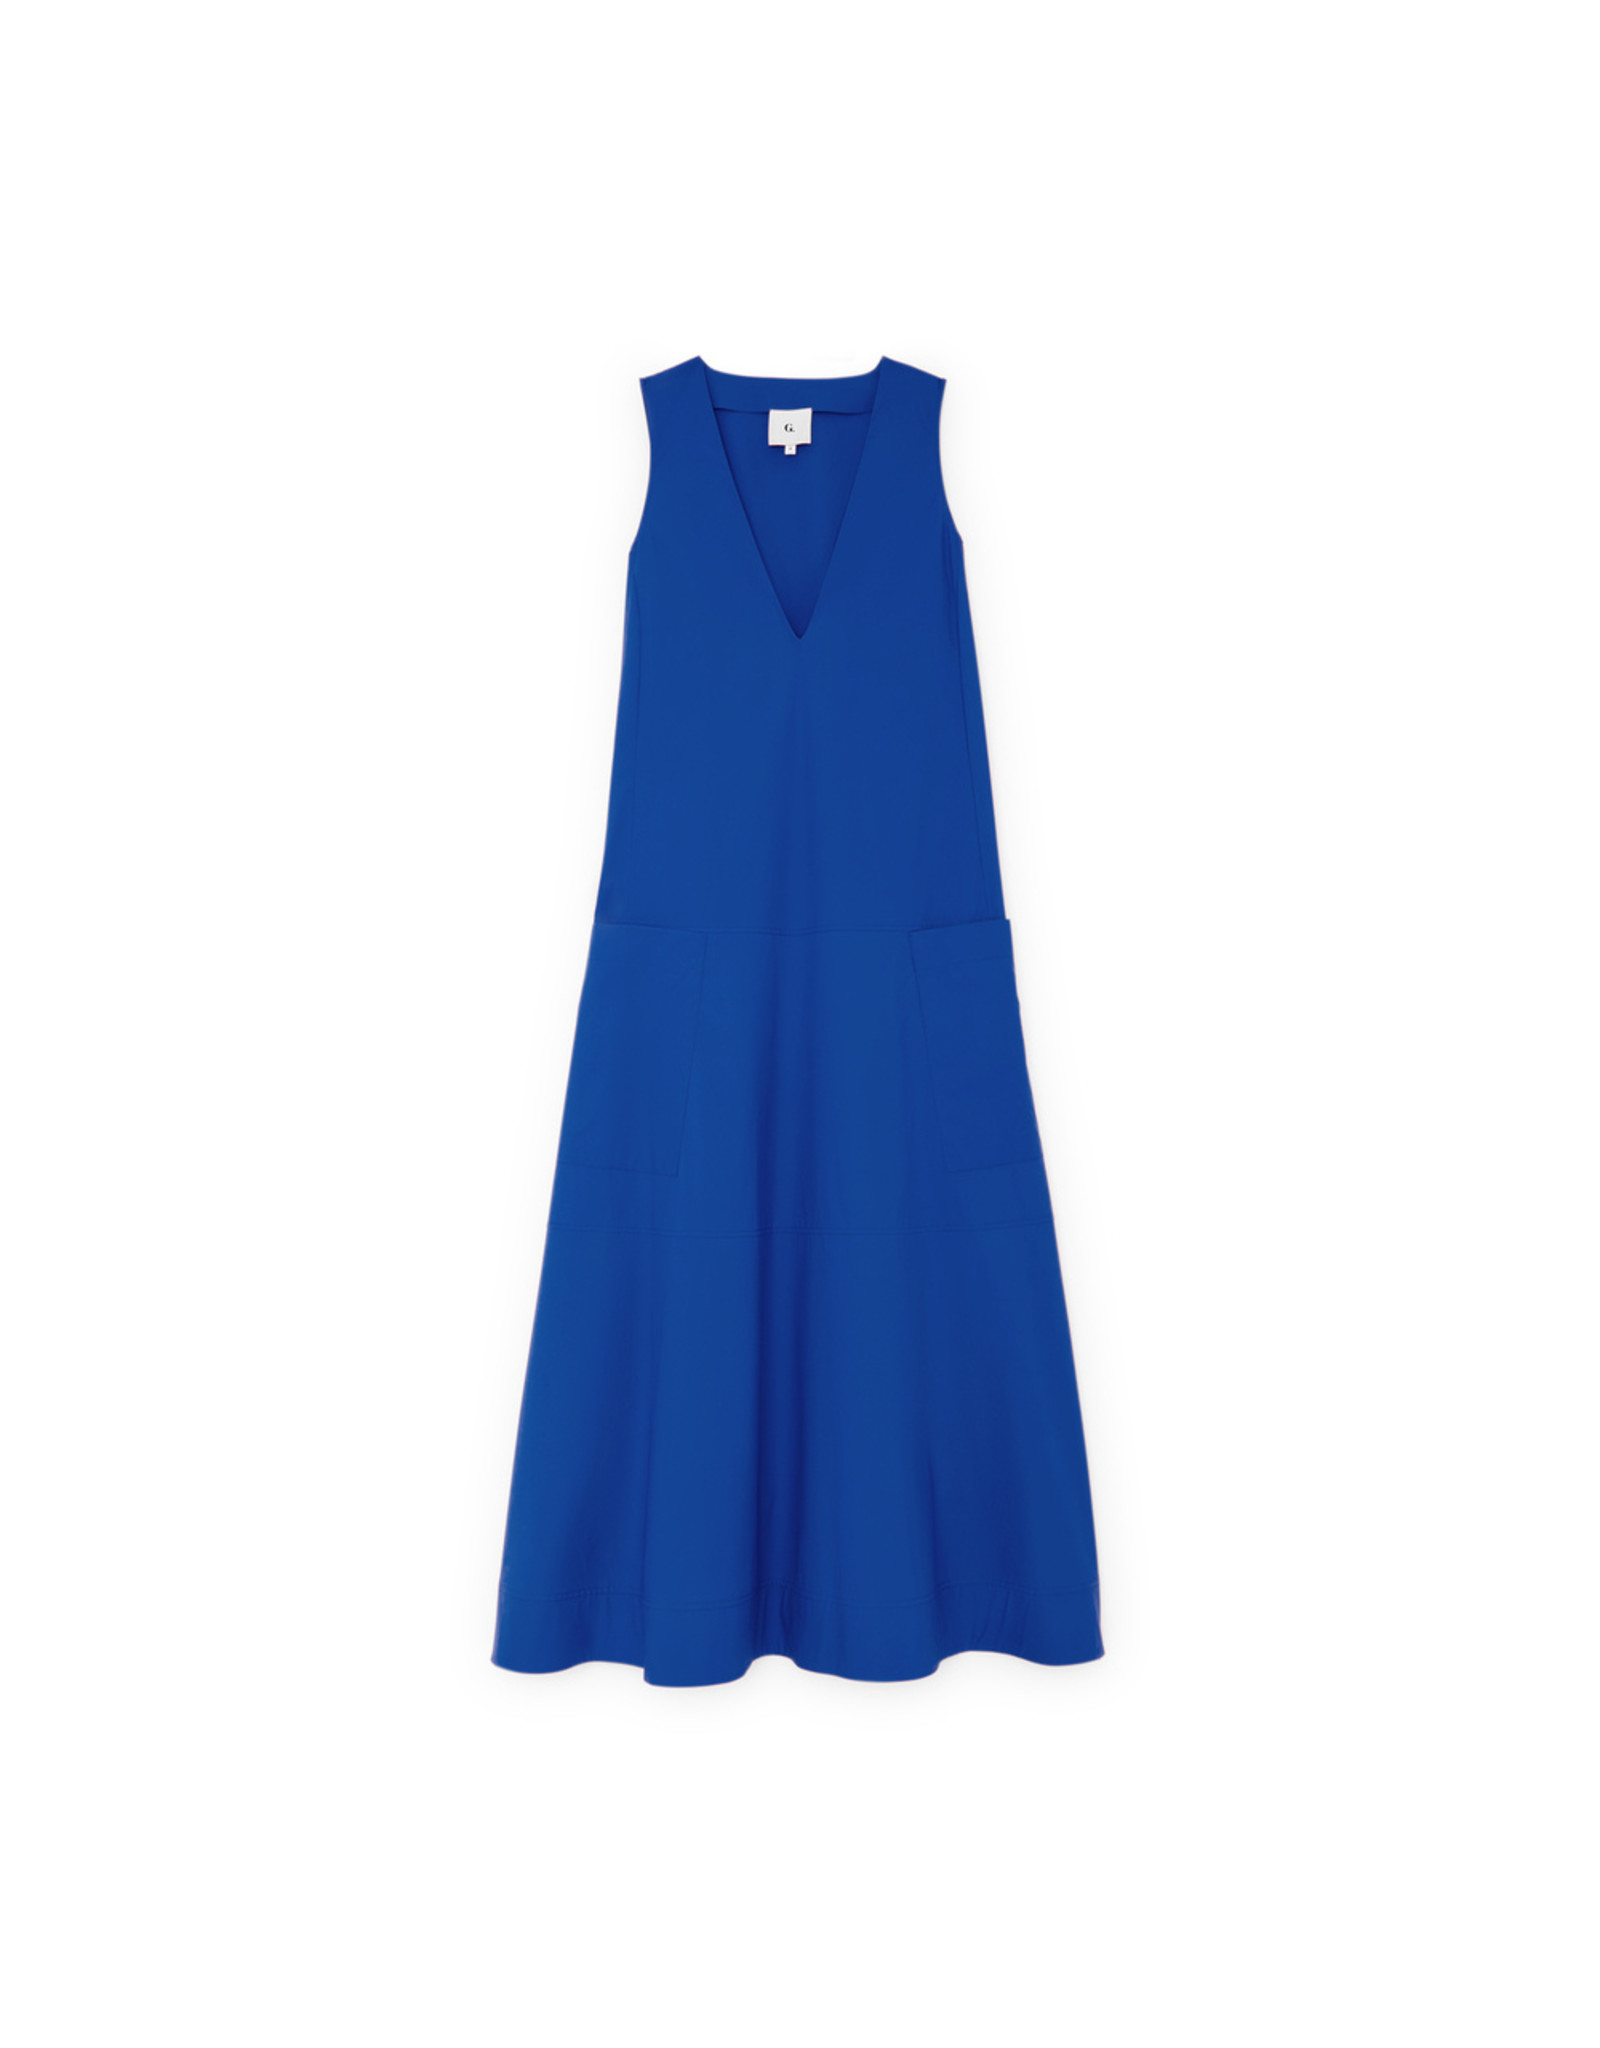 G. Label Maiya Housedress (Color: Blue, Size: 4)